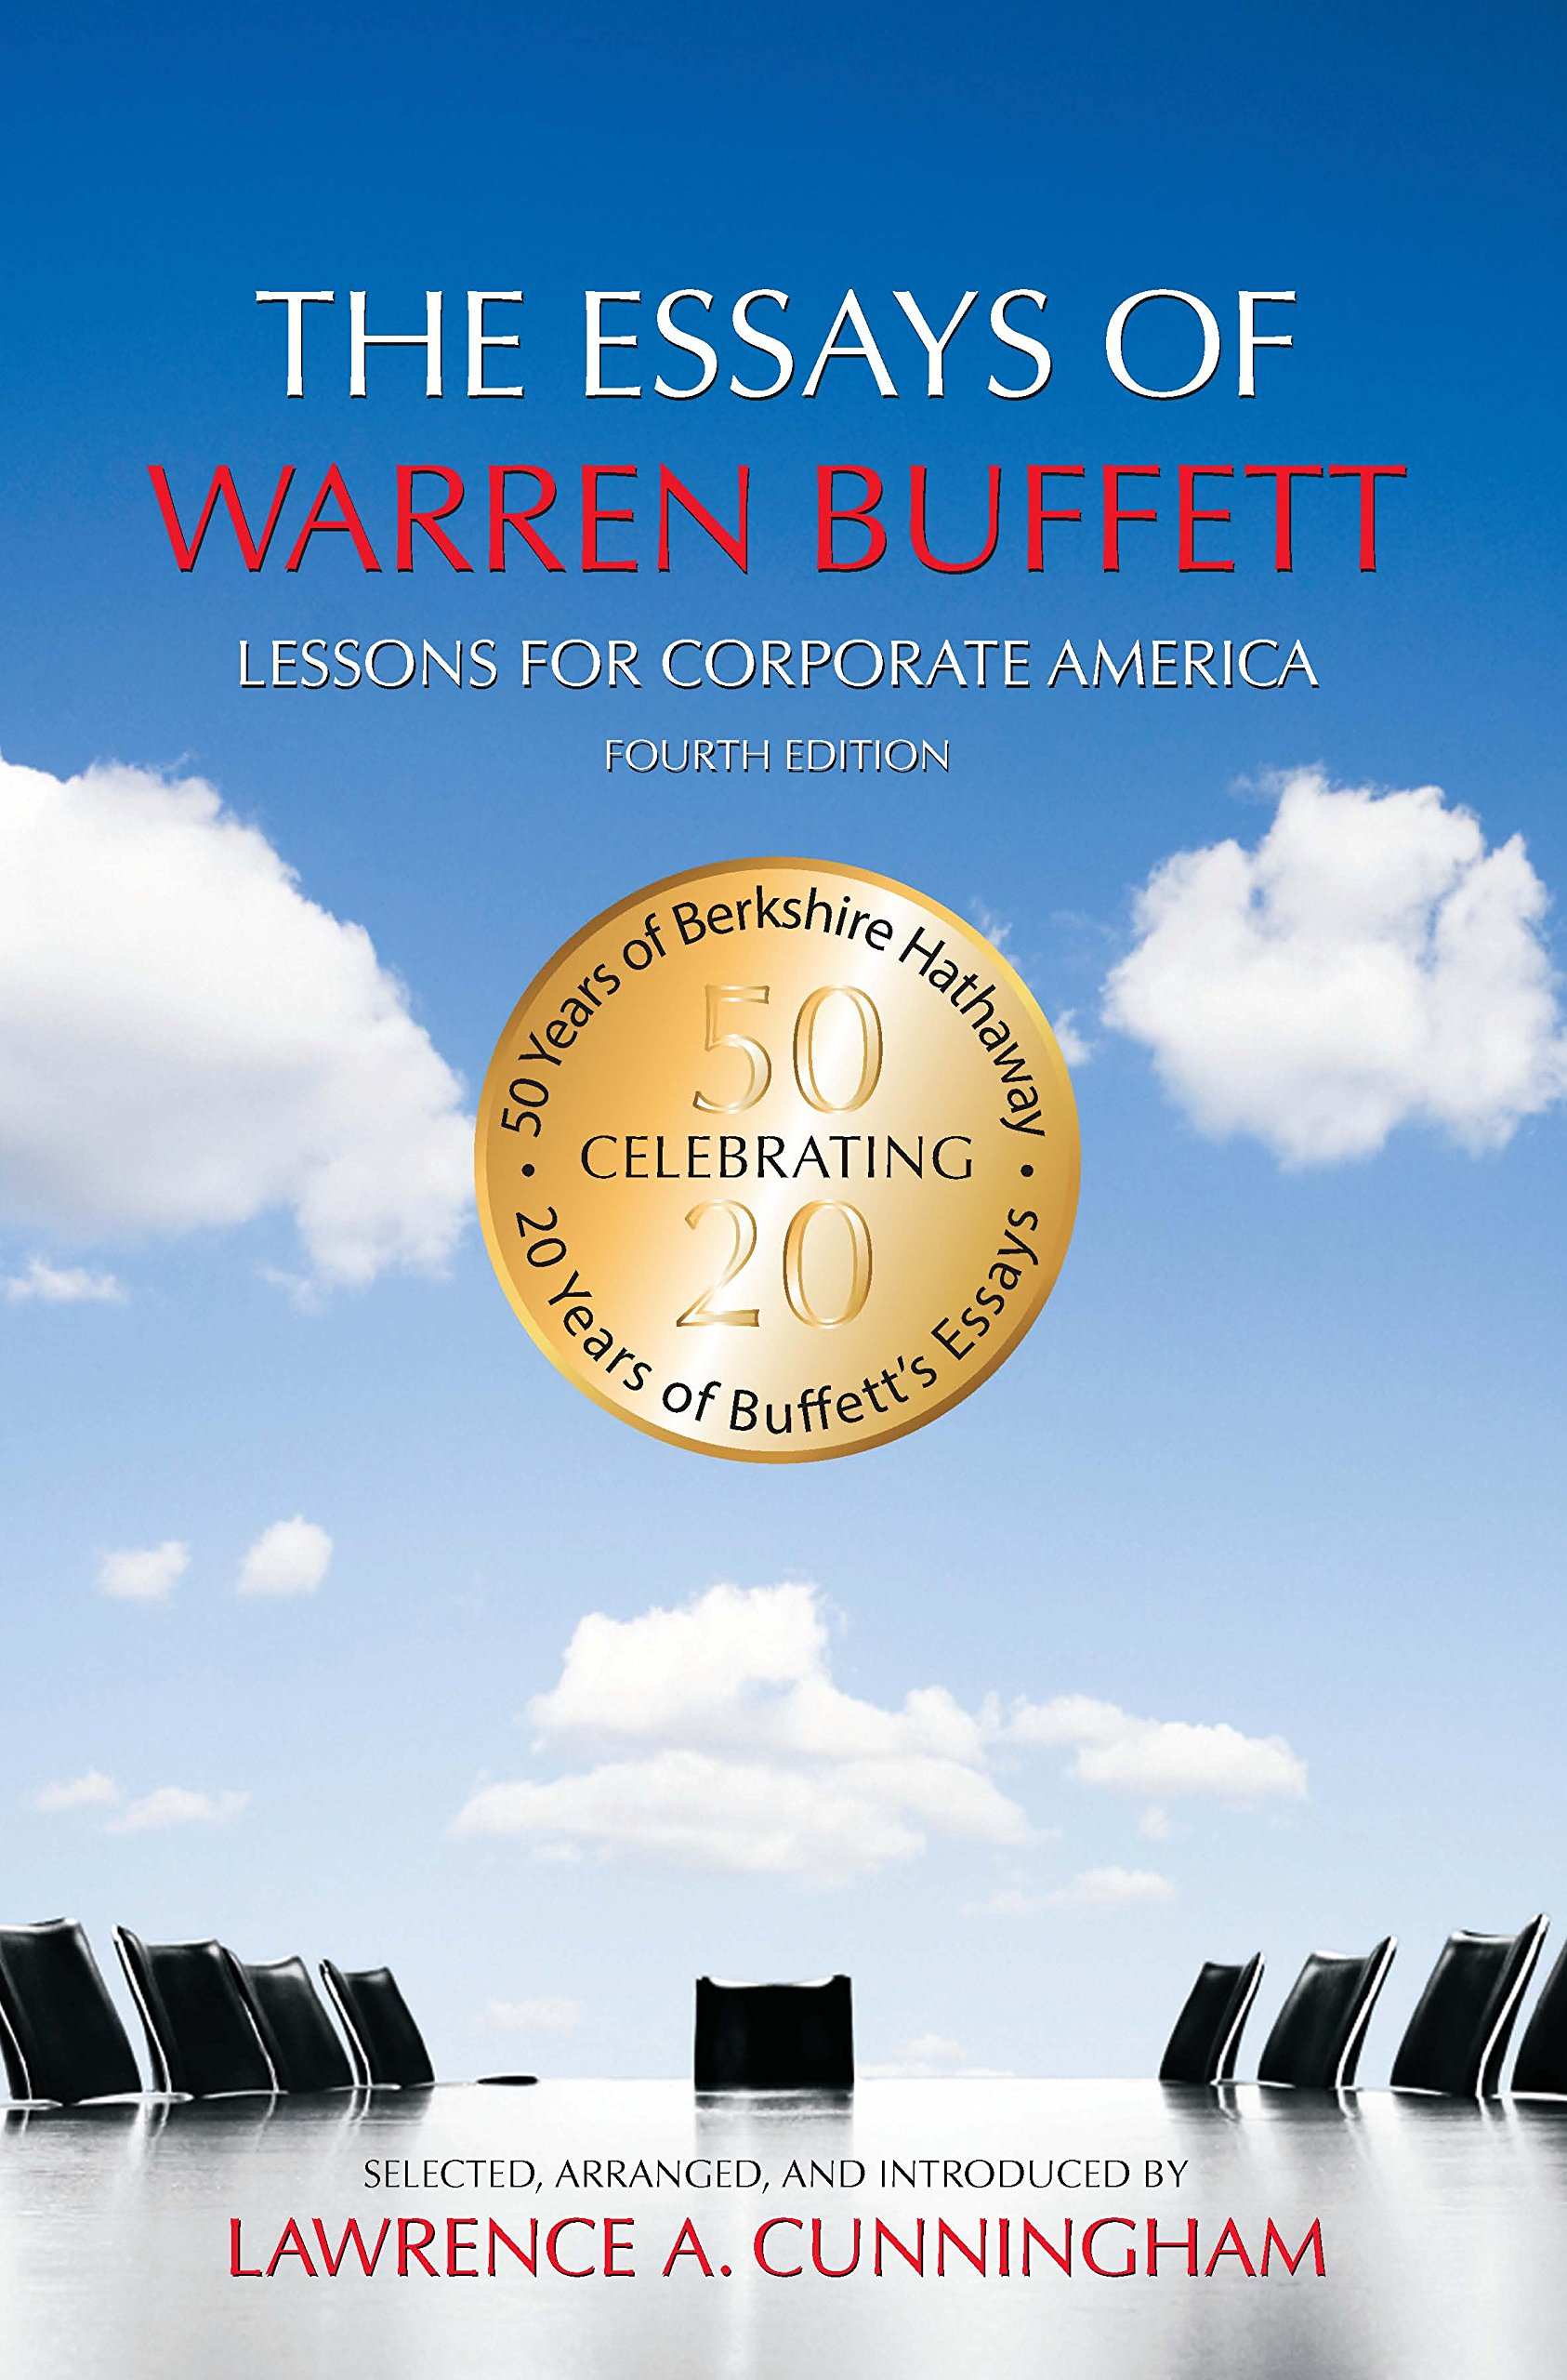 Image result for 'The Essays of Warren Buffett' by Warren Buffett